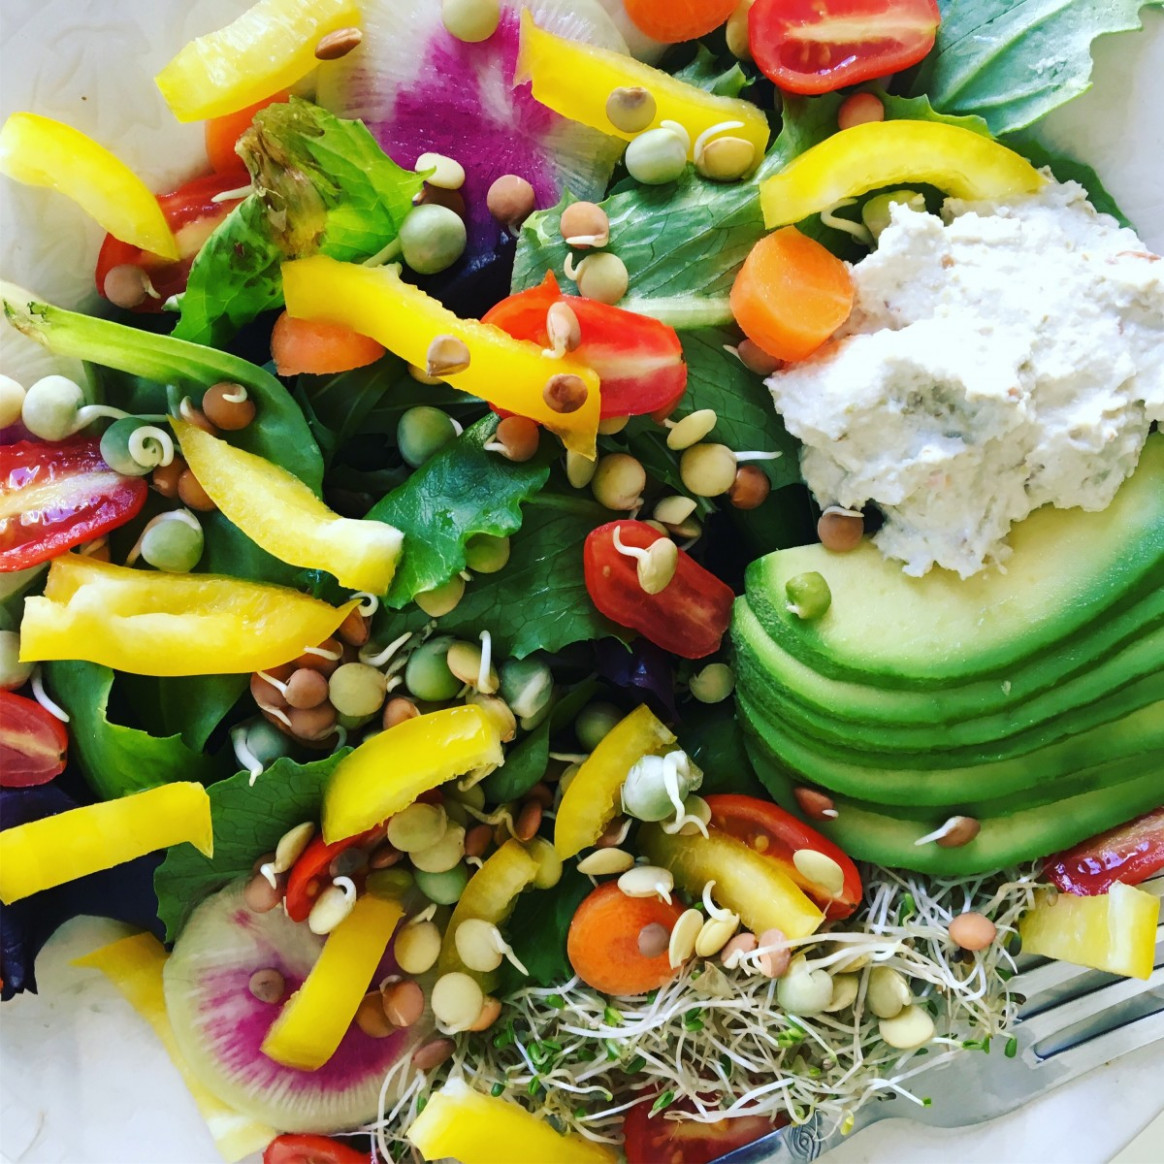 Raw Food Diet Plan Plus 12 Recipes to Get Started - DOES IT ..